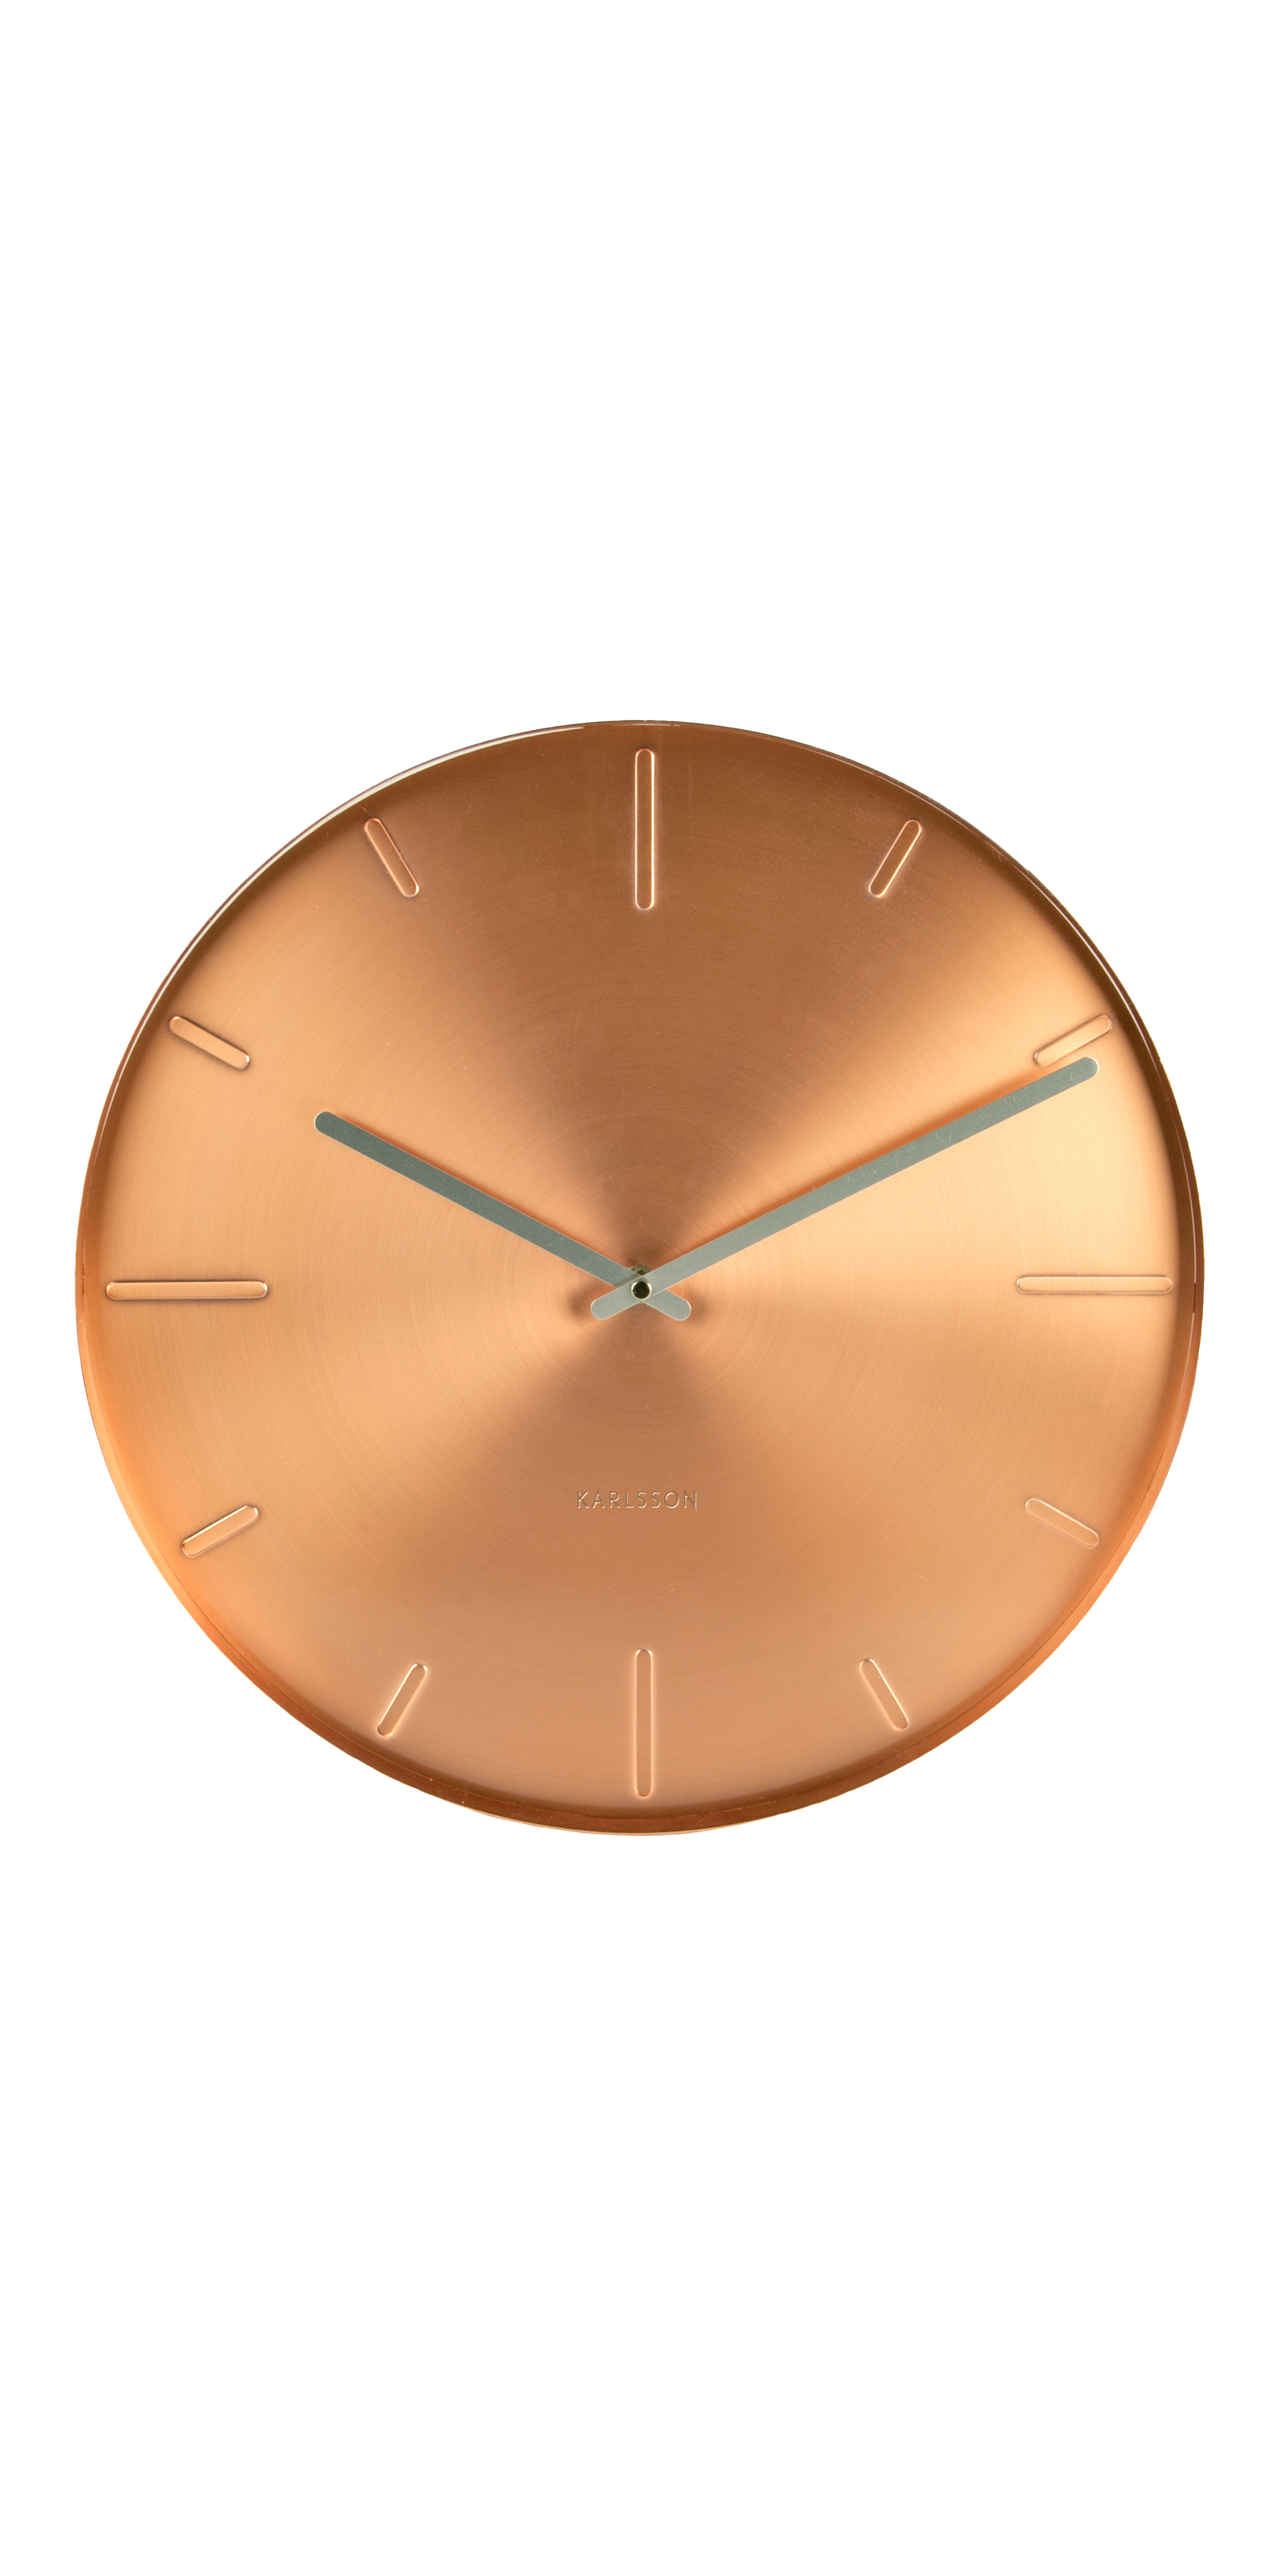 Round analog wall clock in metal